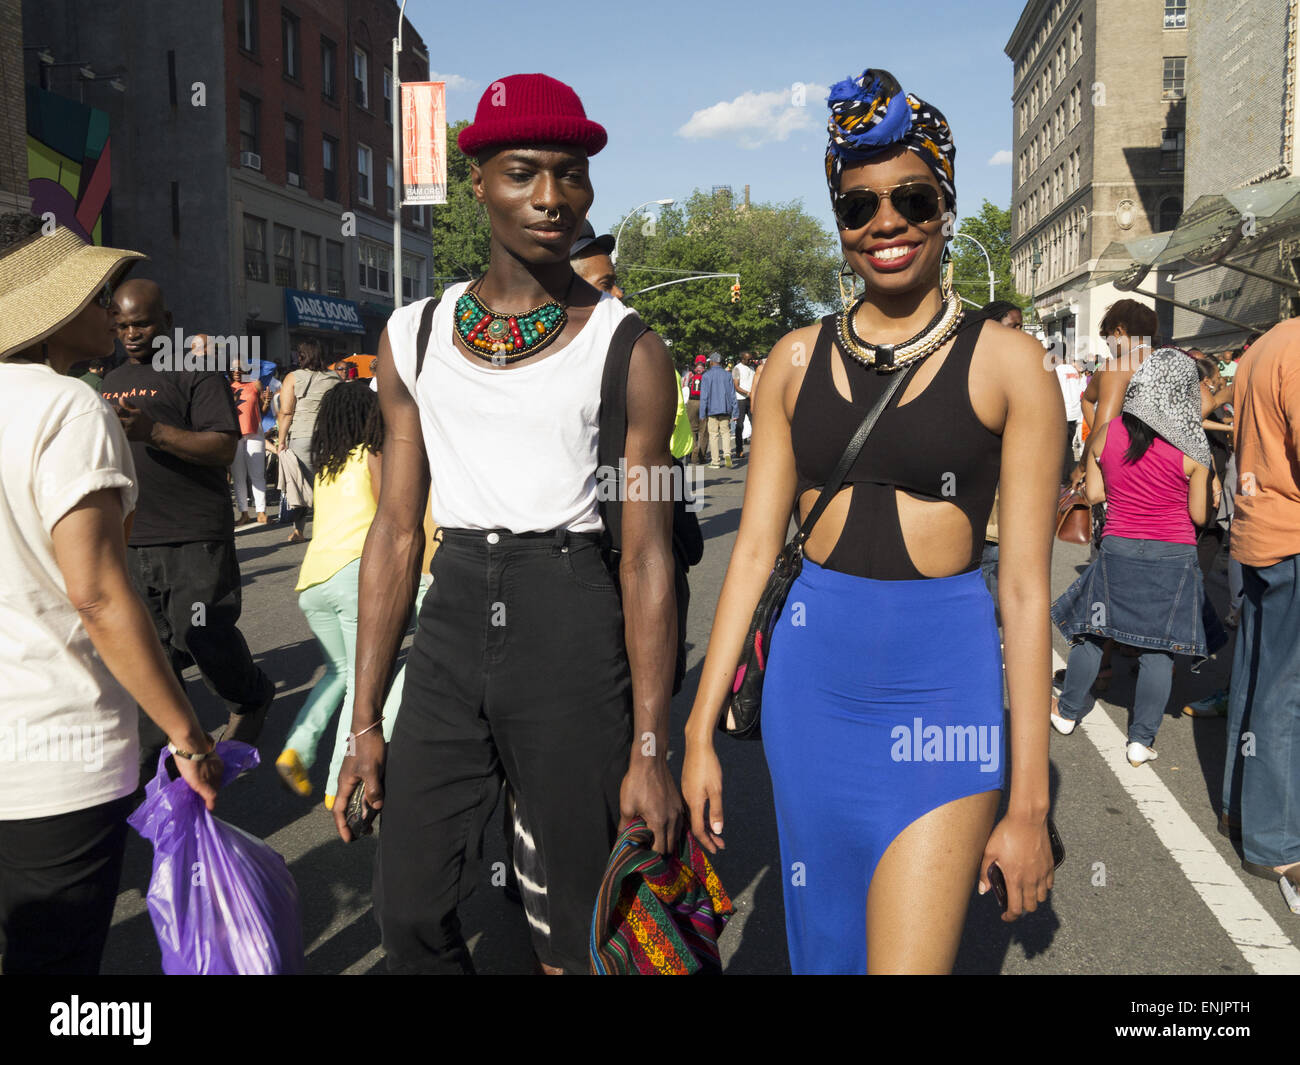 Friends Wearing African Inspired Clothing And Jewelry At The Dance Stock Photo Alamy